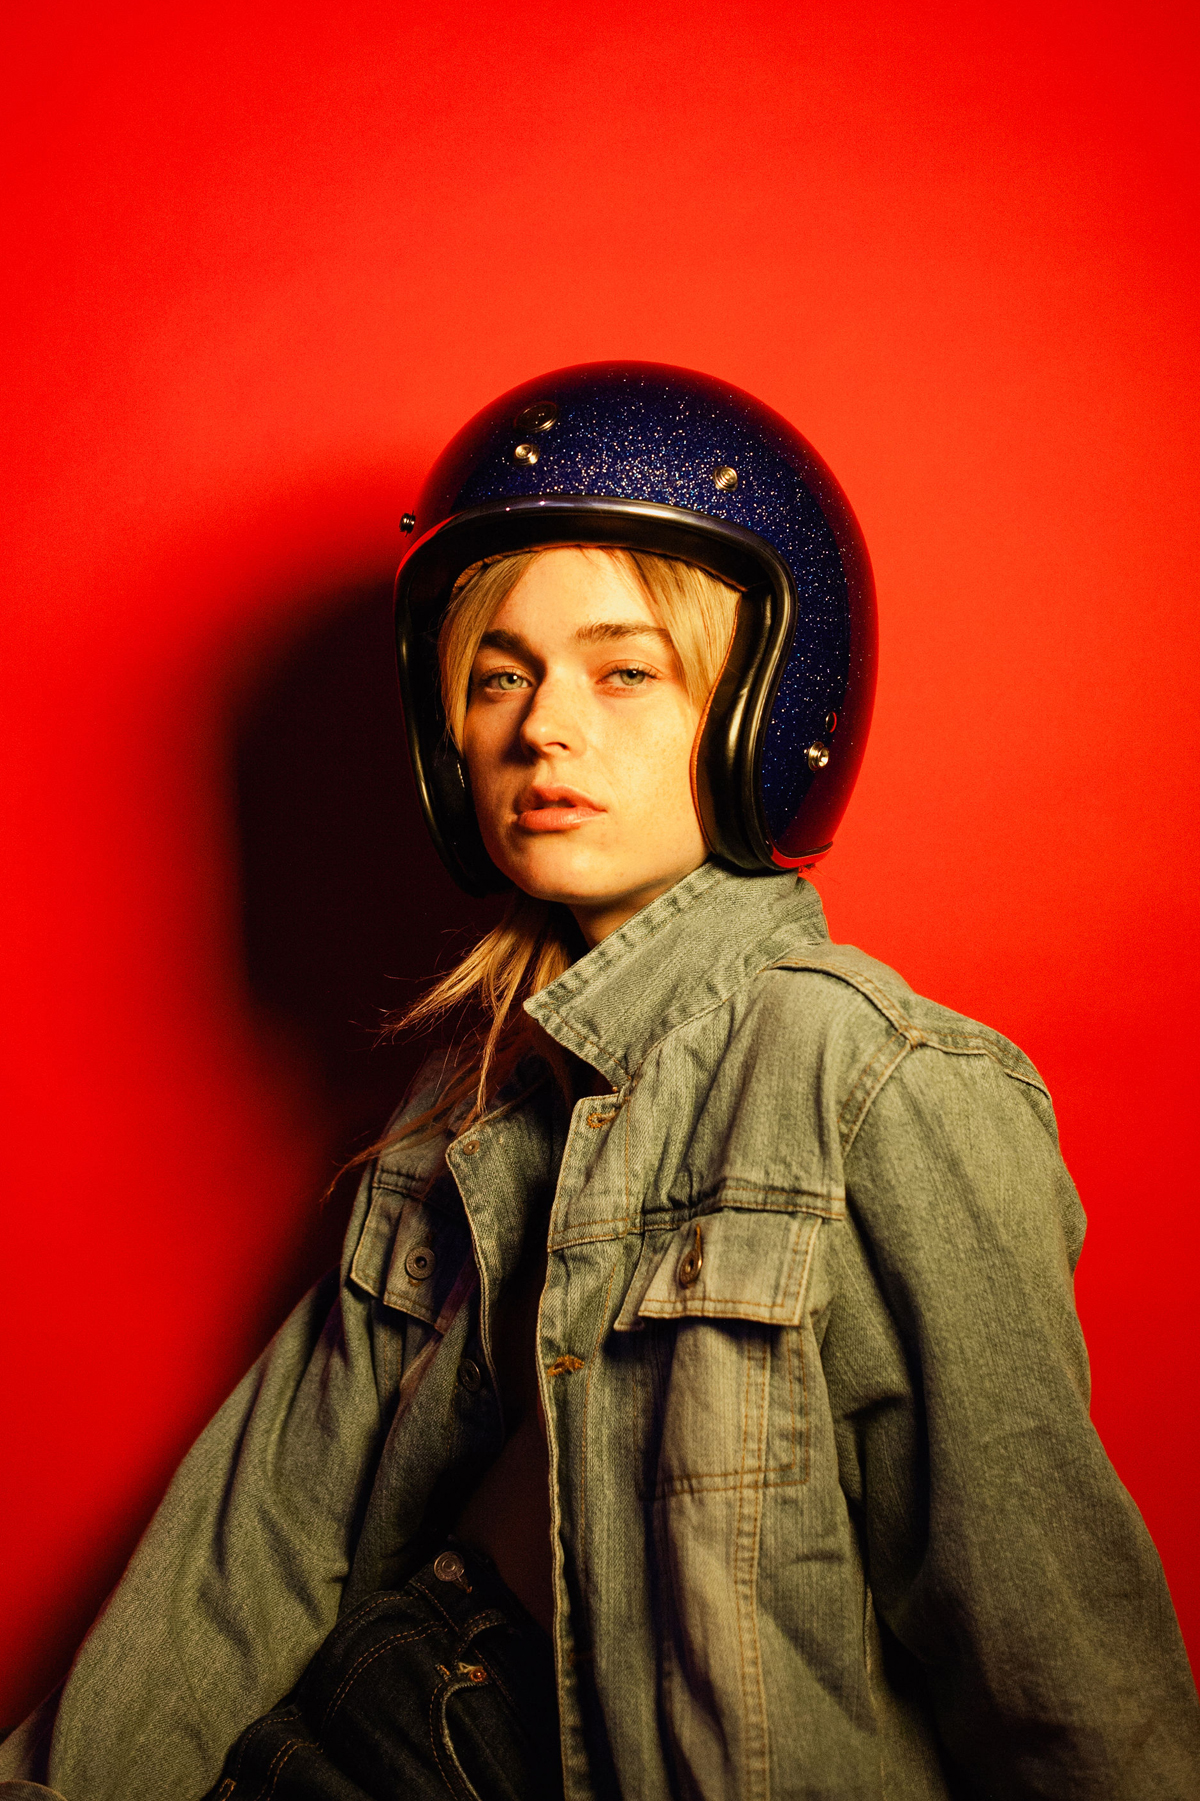 woman with helmet on red background